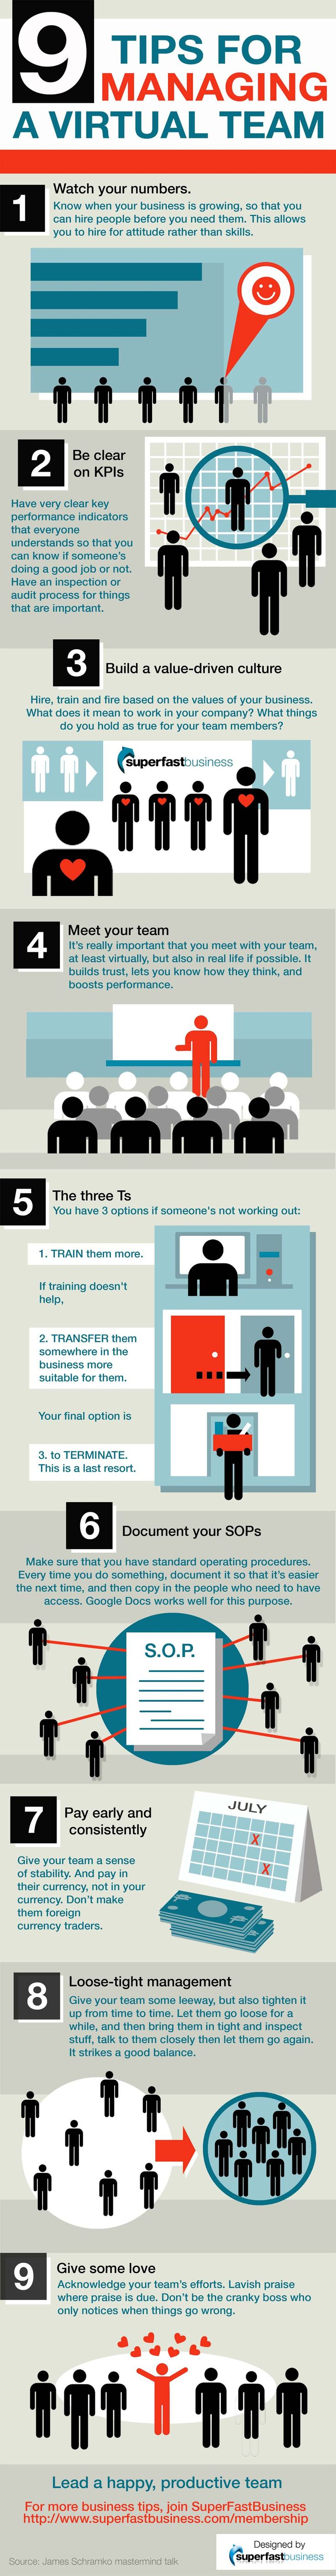 Infographic 9 Tips For Managing A Virtual Team